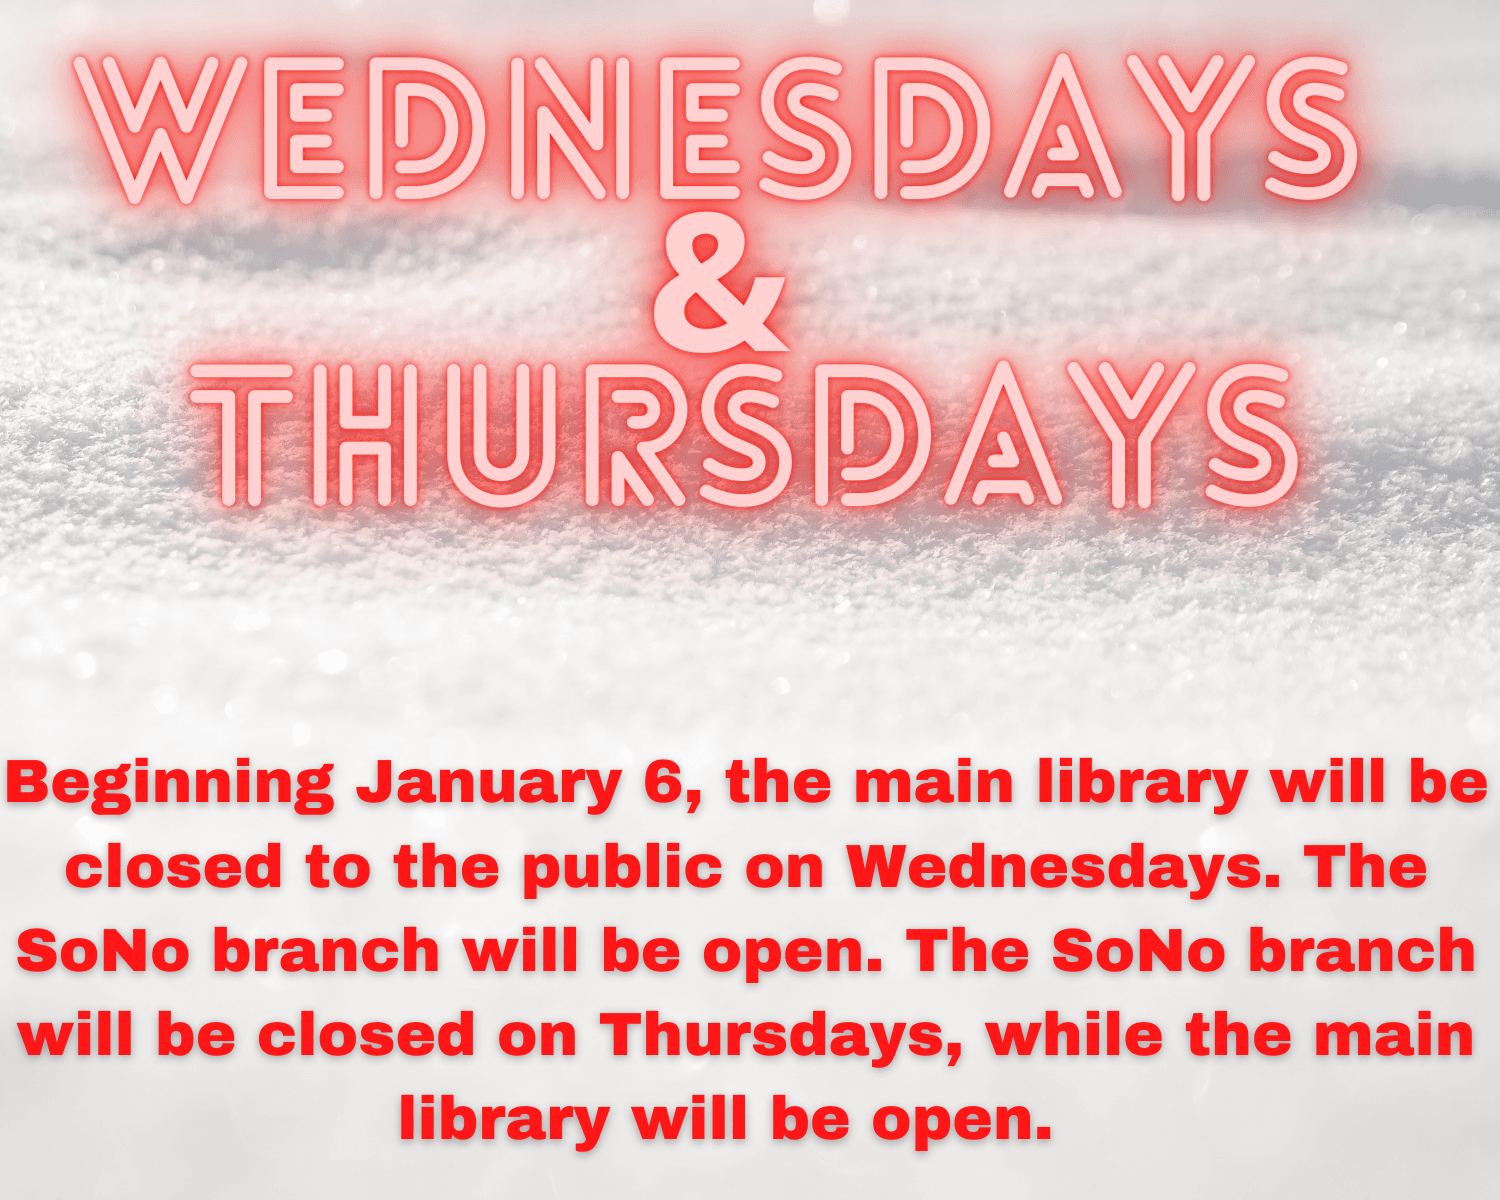 The Main Library will be closed on Wednesdays & the SoNo Library will be closed on Thursdays beginning January 6, 2021